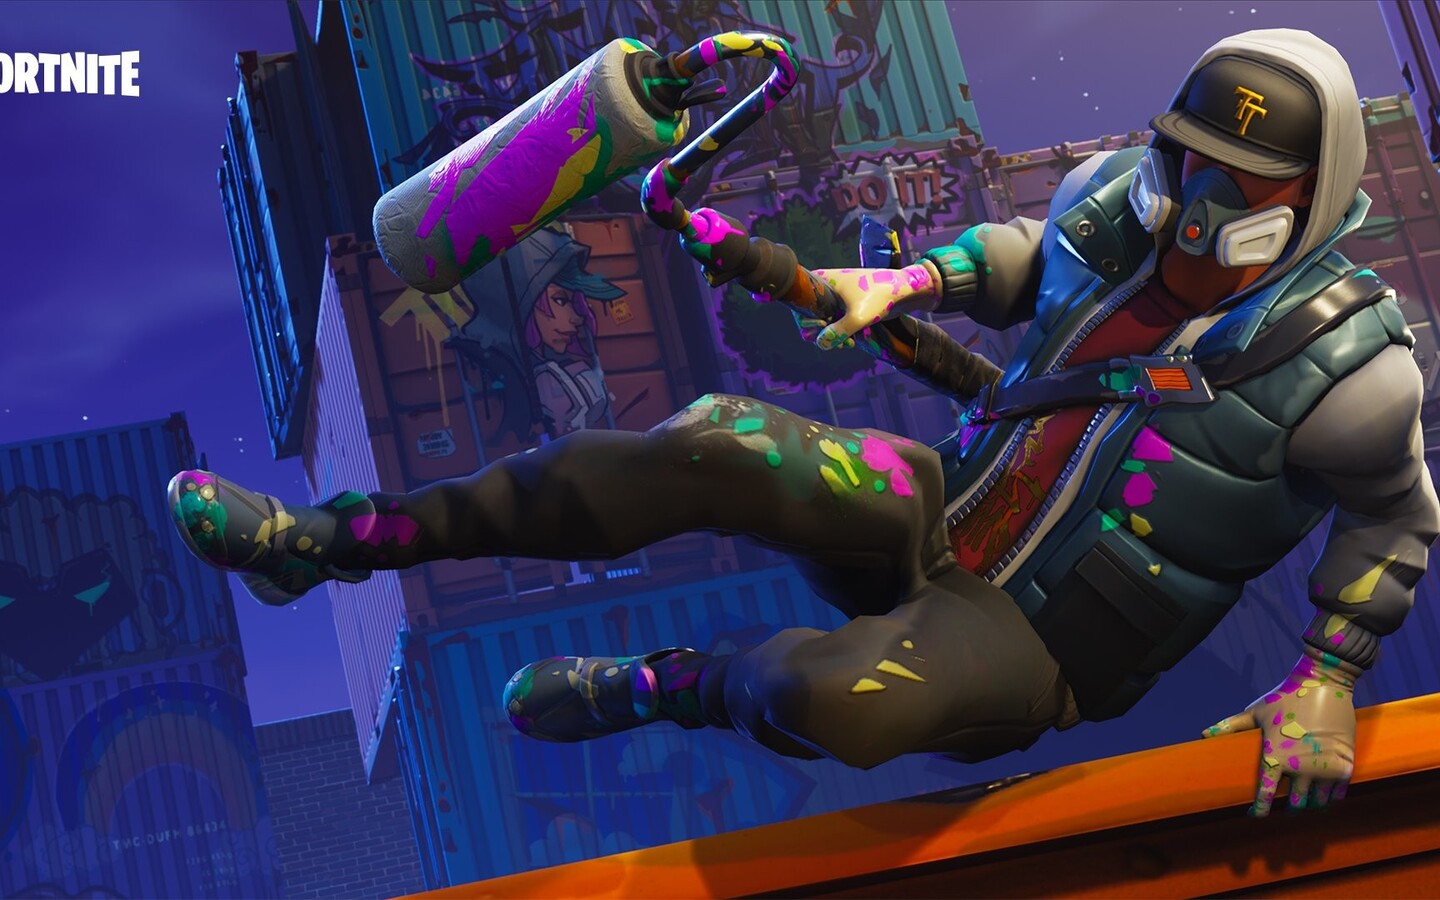 fortnite wallpaper 1440x900: 1440x900 Fortnite Battle Royale Abstrakt Skin 1440x900